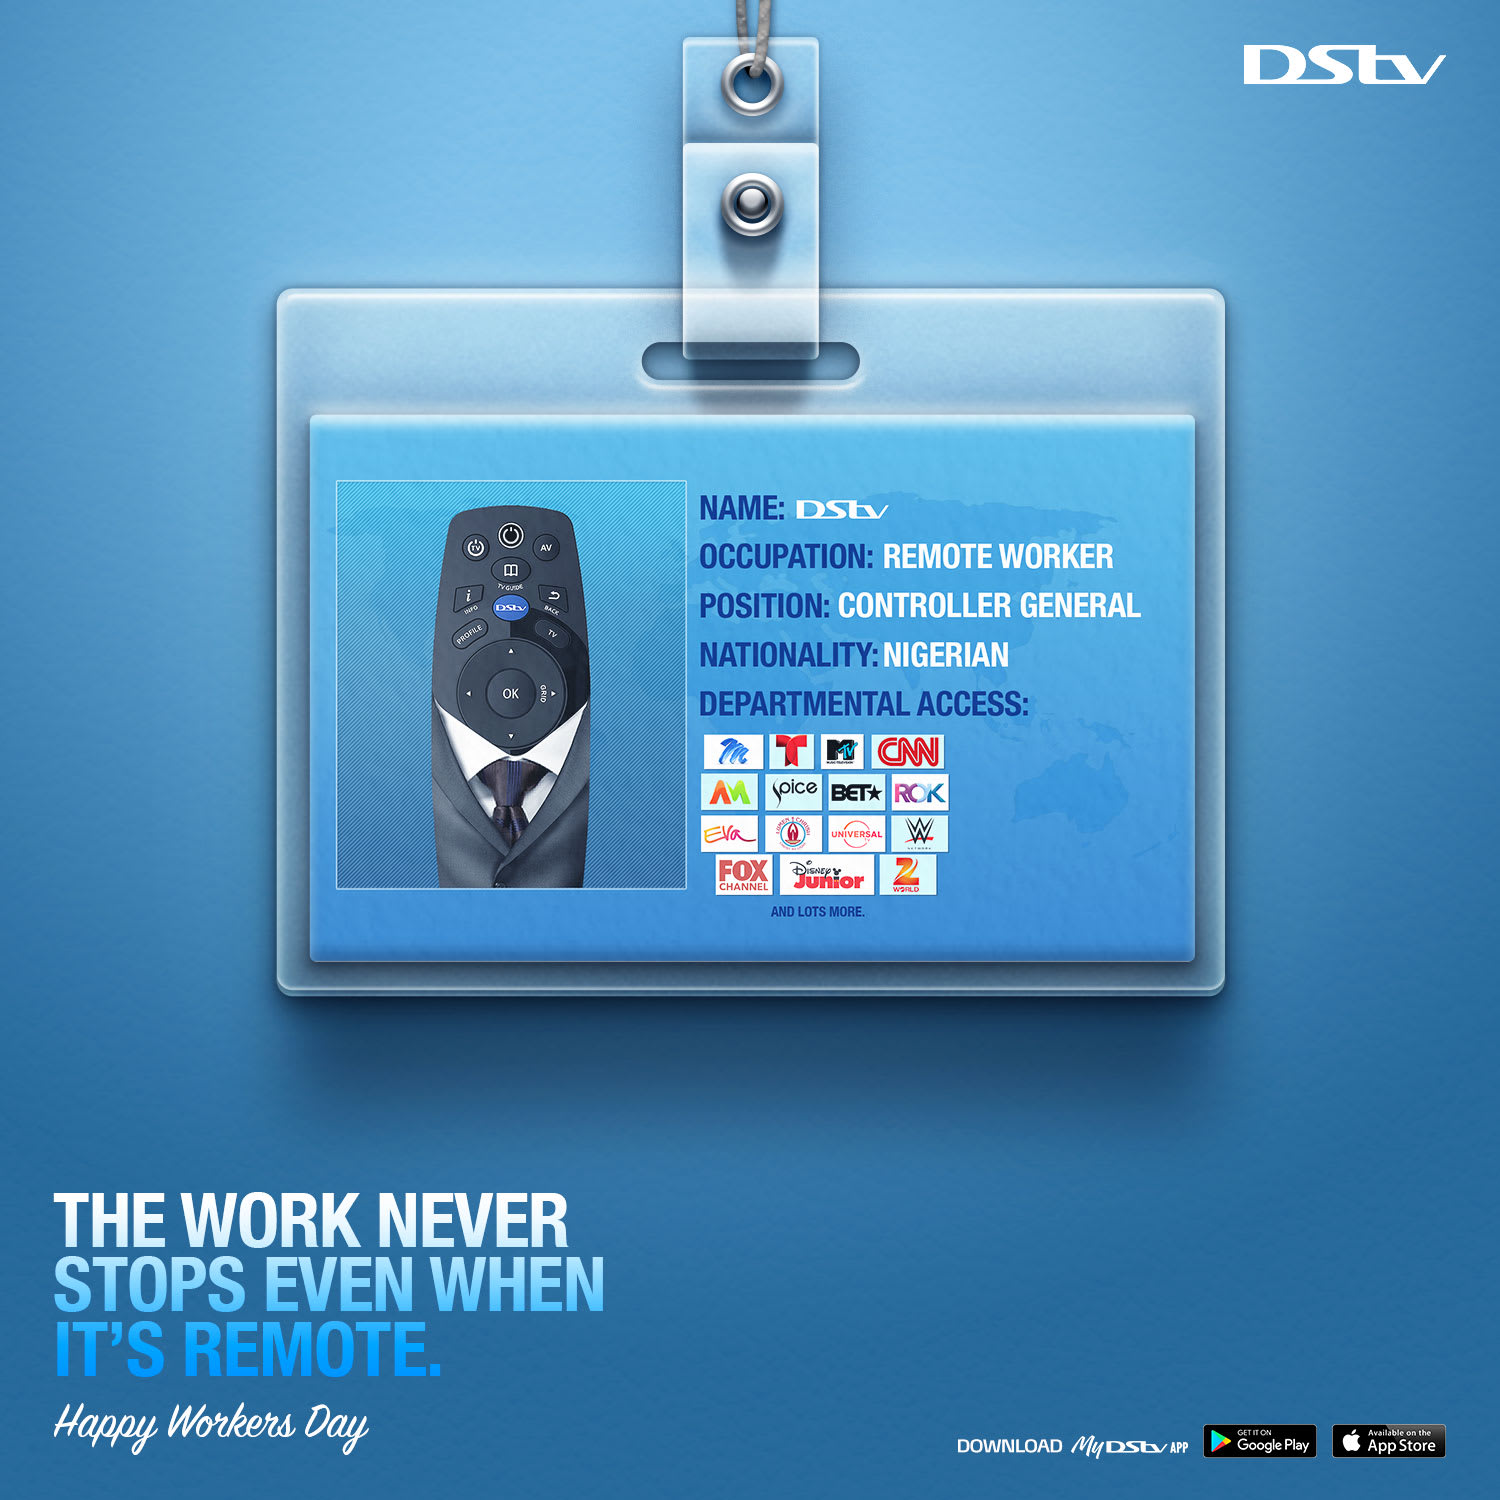 DStv Worker's Day Ad